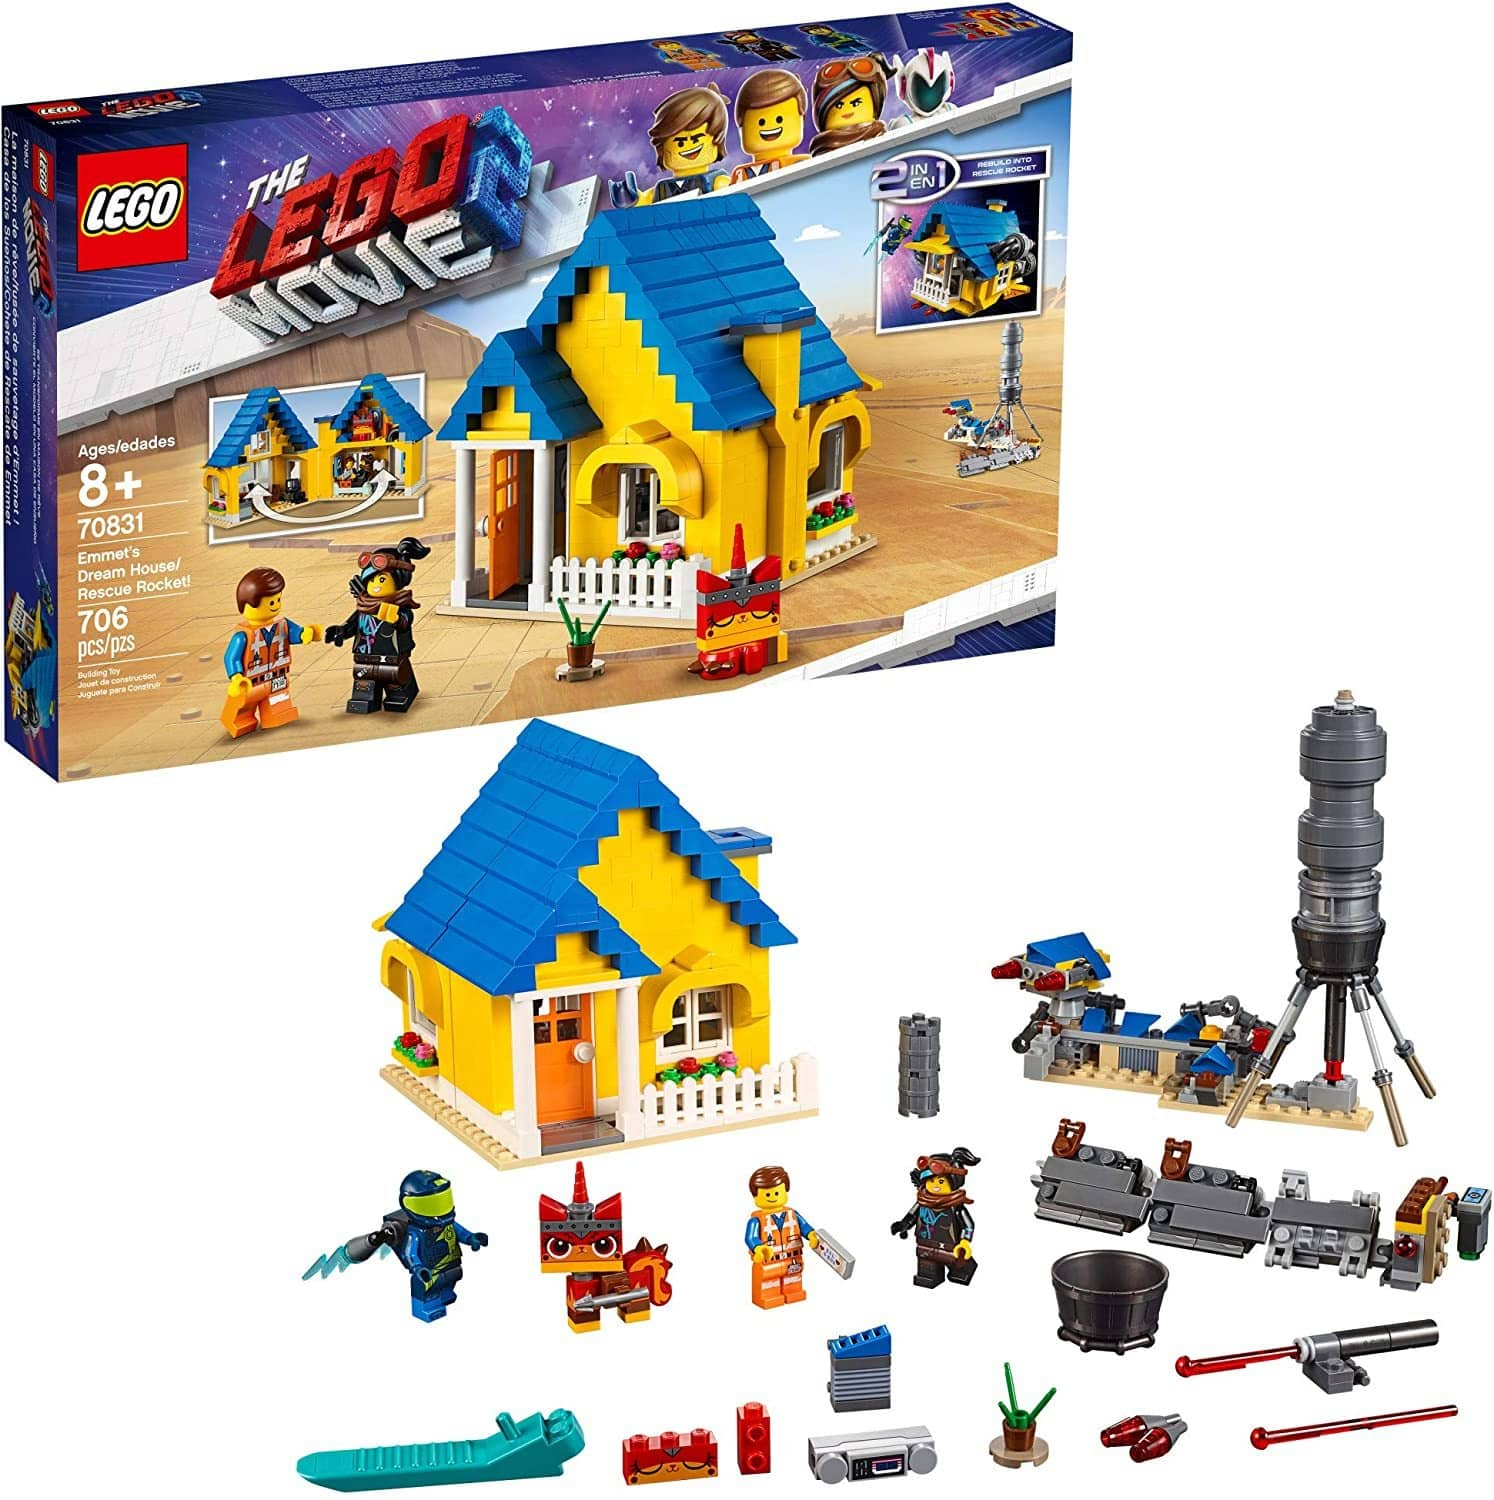 LEGO 70831: LEGO Movie 2: Emmet's Dream House/Rescue Rocket! (706 Pieces)-Kidding Around NYC